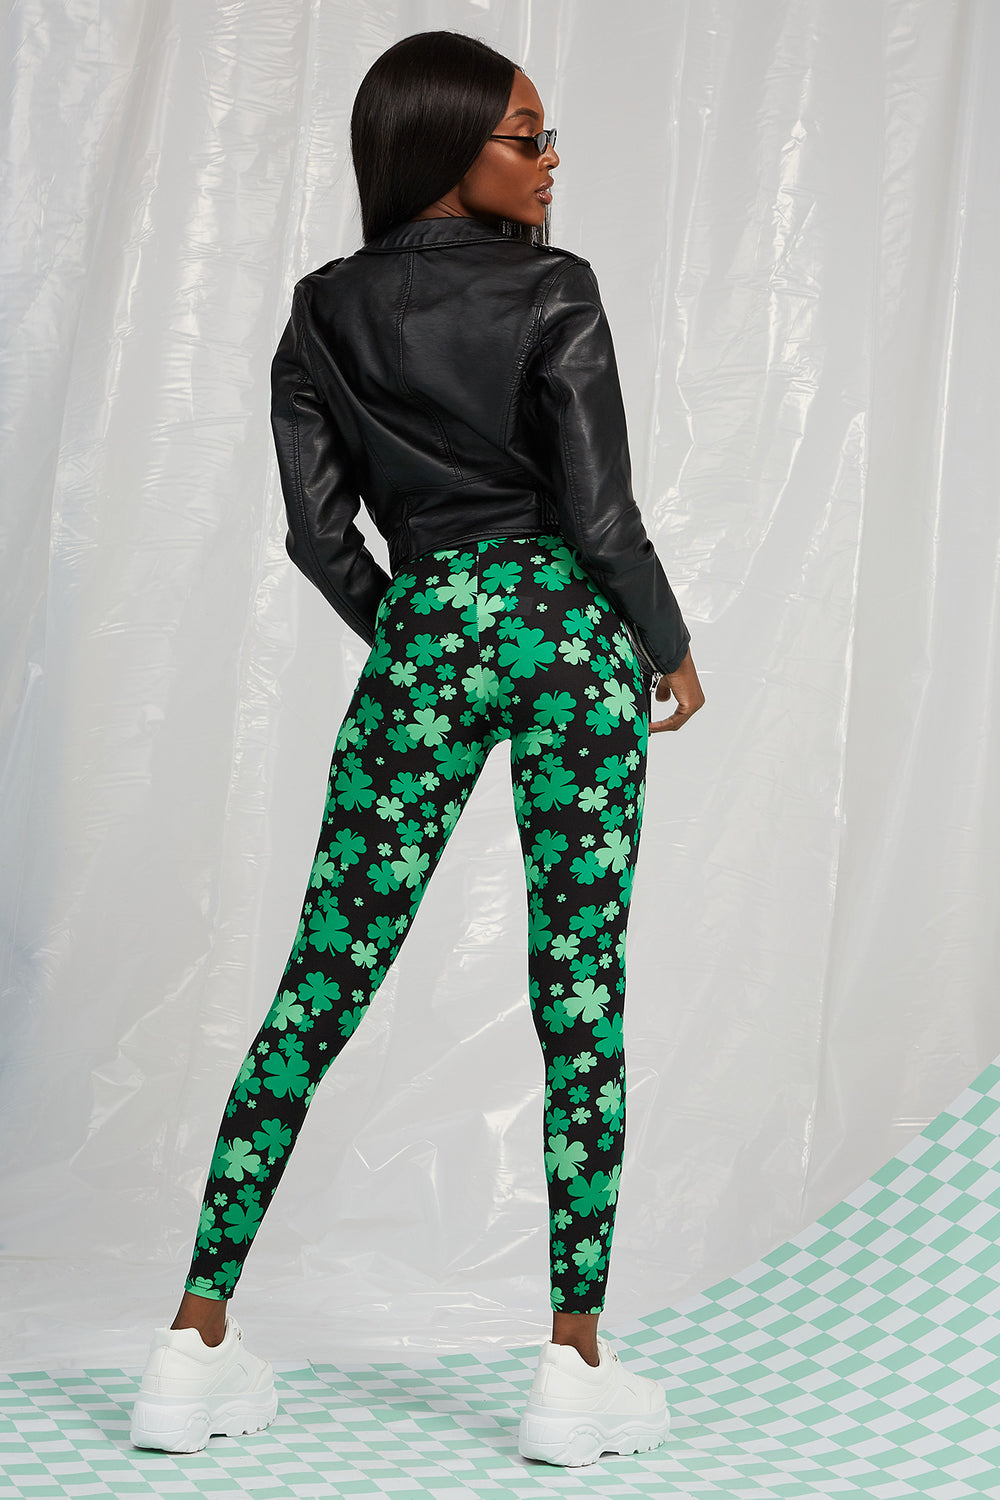 St. Patrick's Day Clover Legging Black